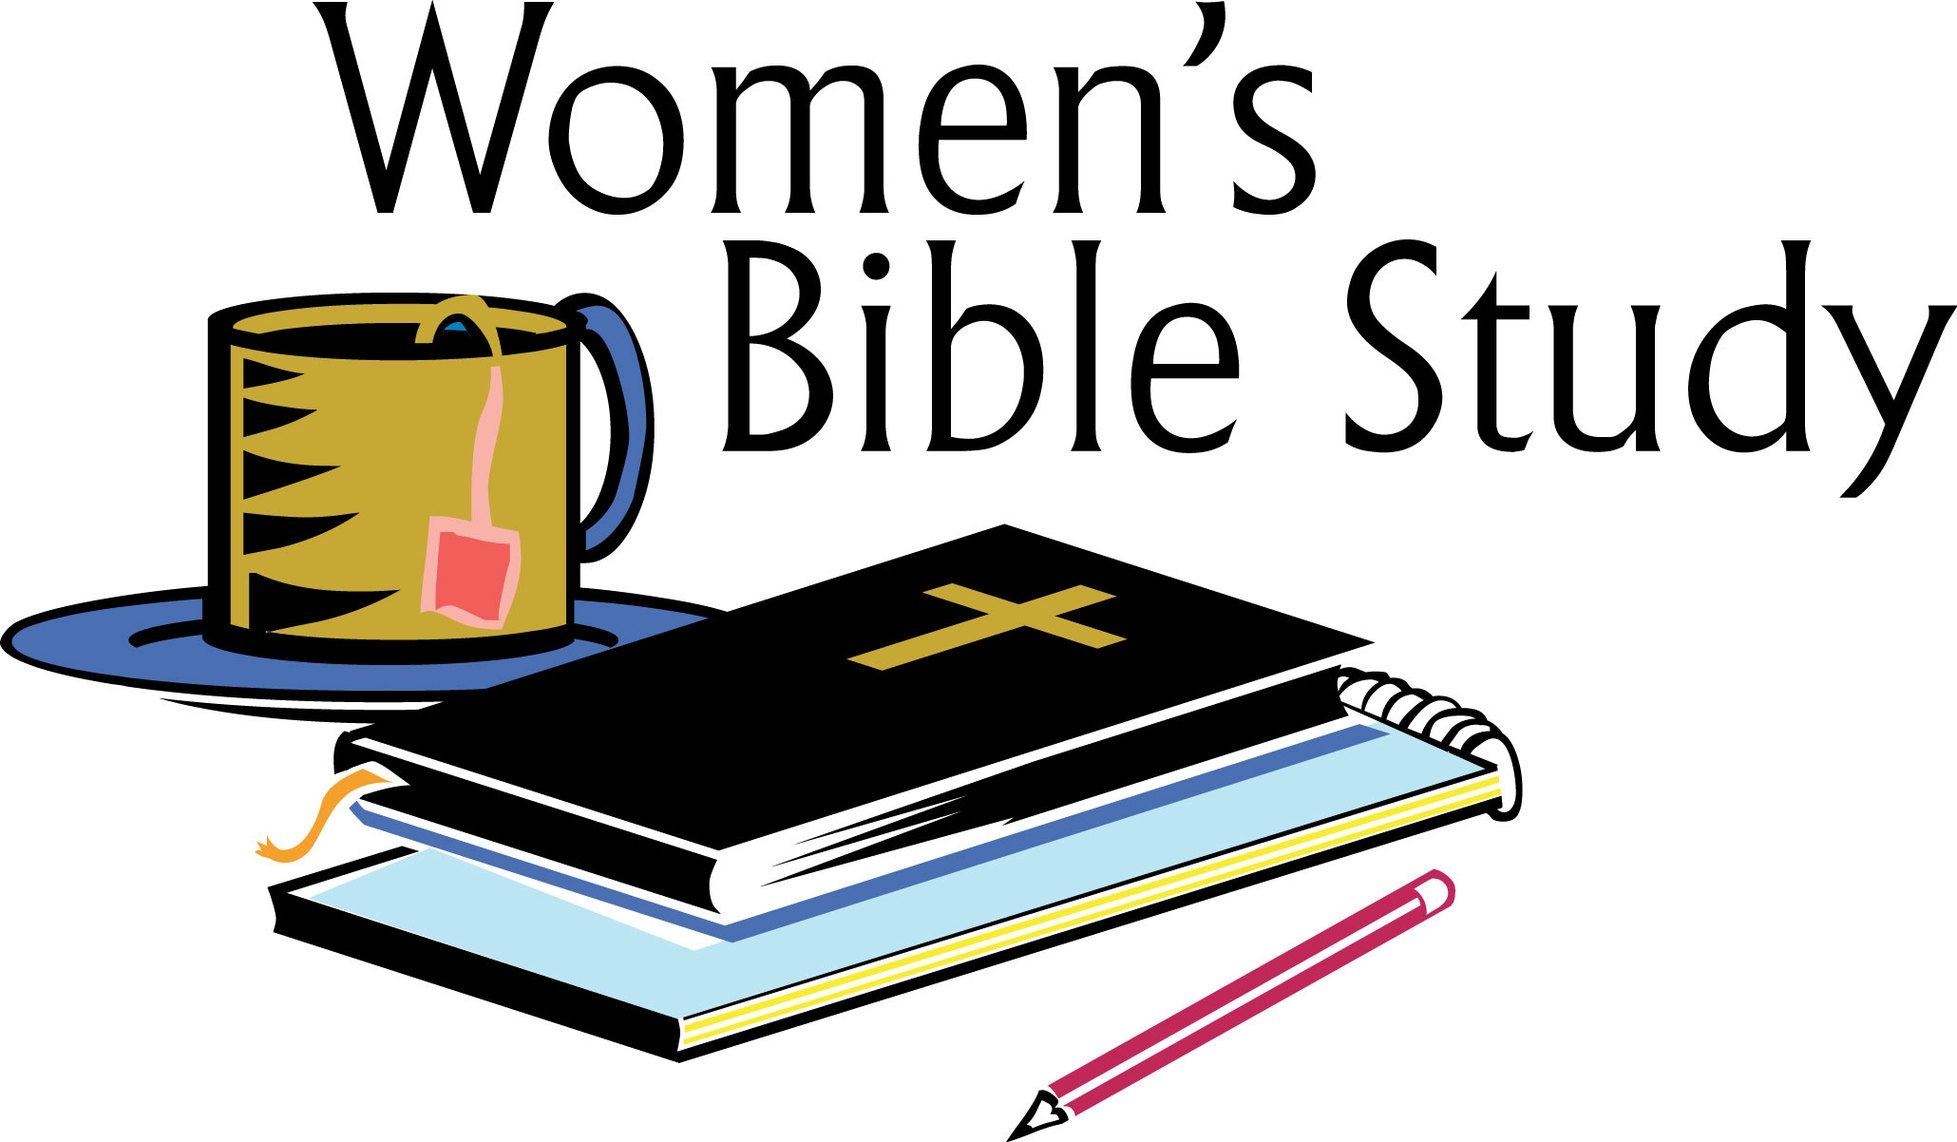 mens bible study clipart clipground bible study clipart images free bible study clipart at 6 30